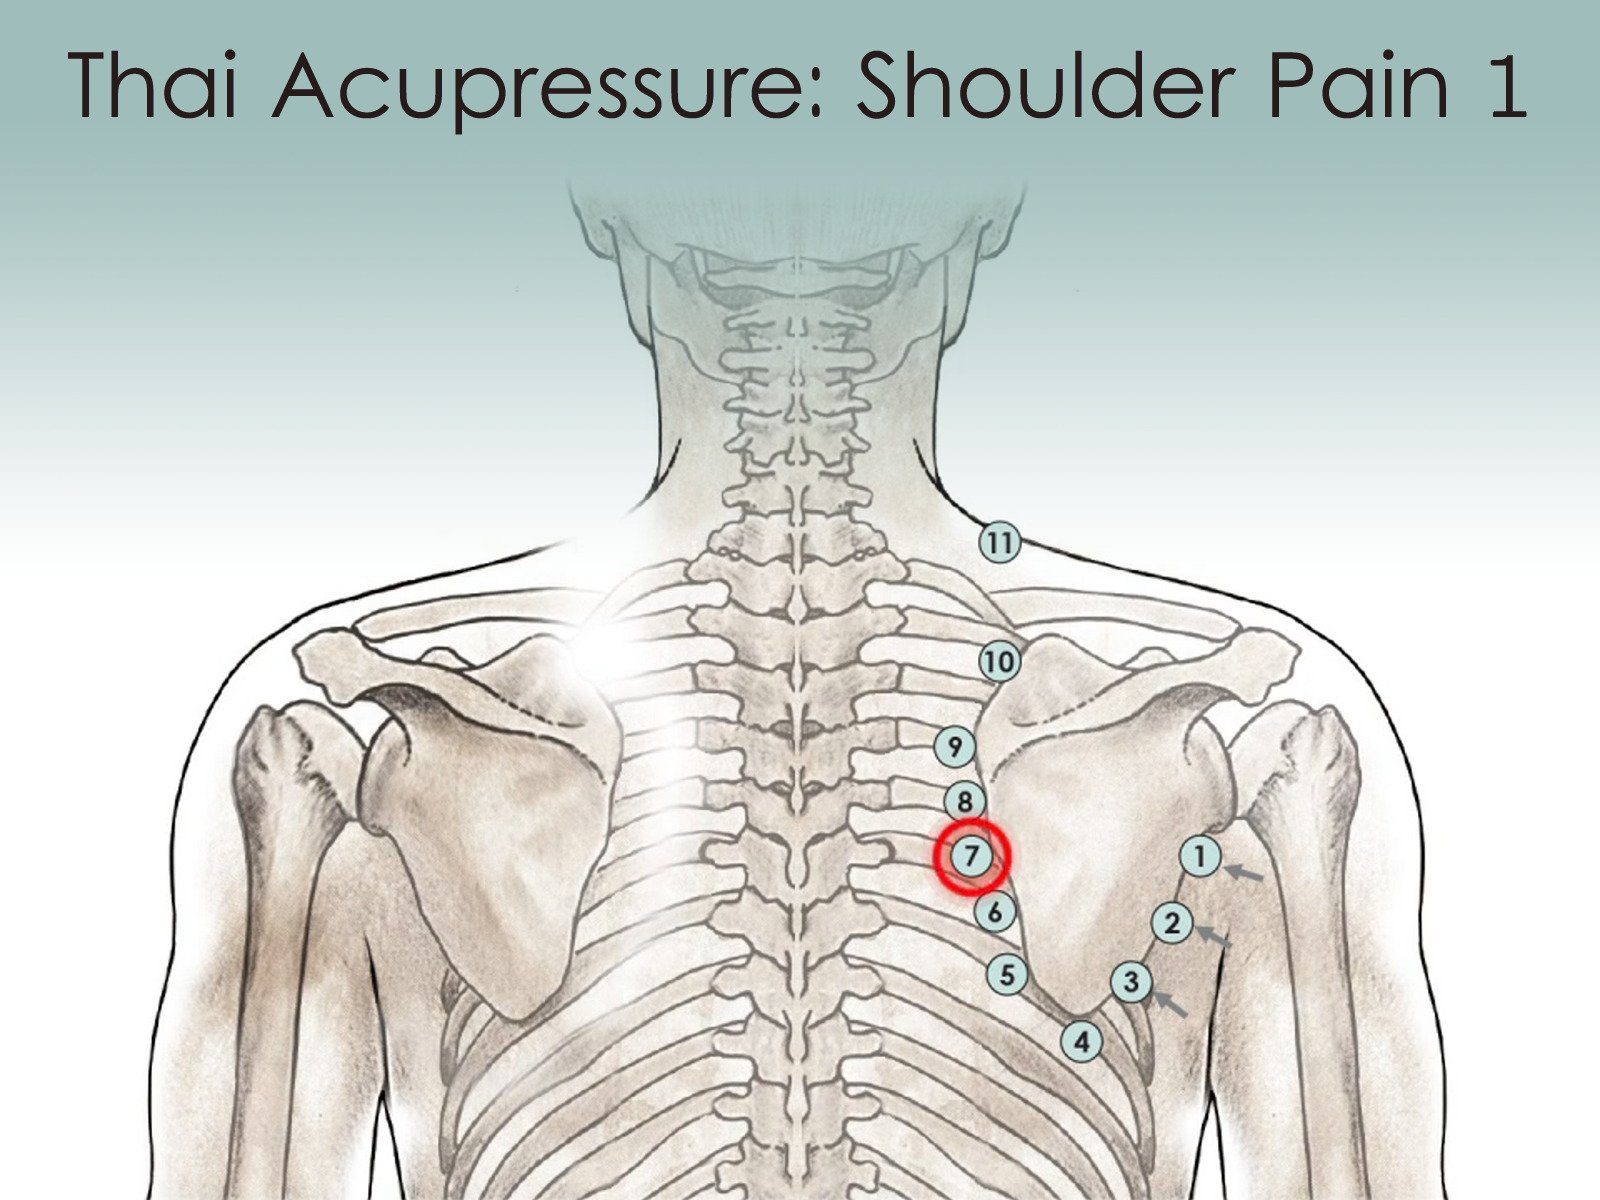 Treatment Routine 11 - Pain at the midpoint of the inner edge of the shoulder blade by